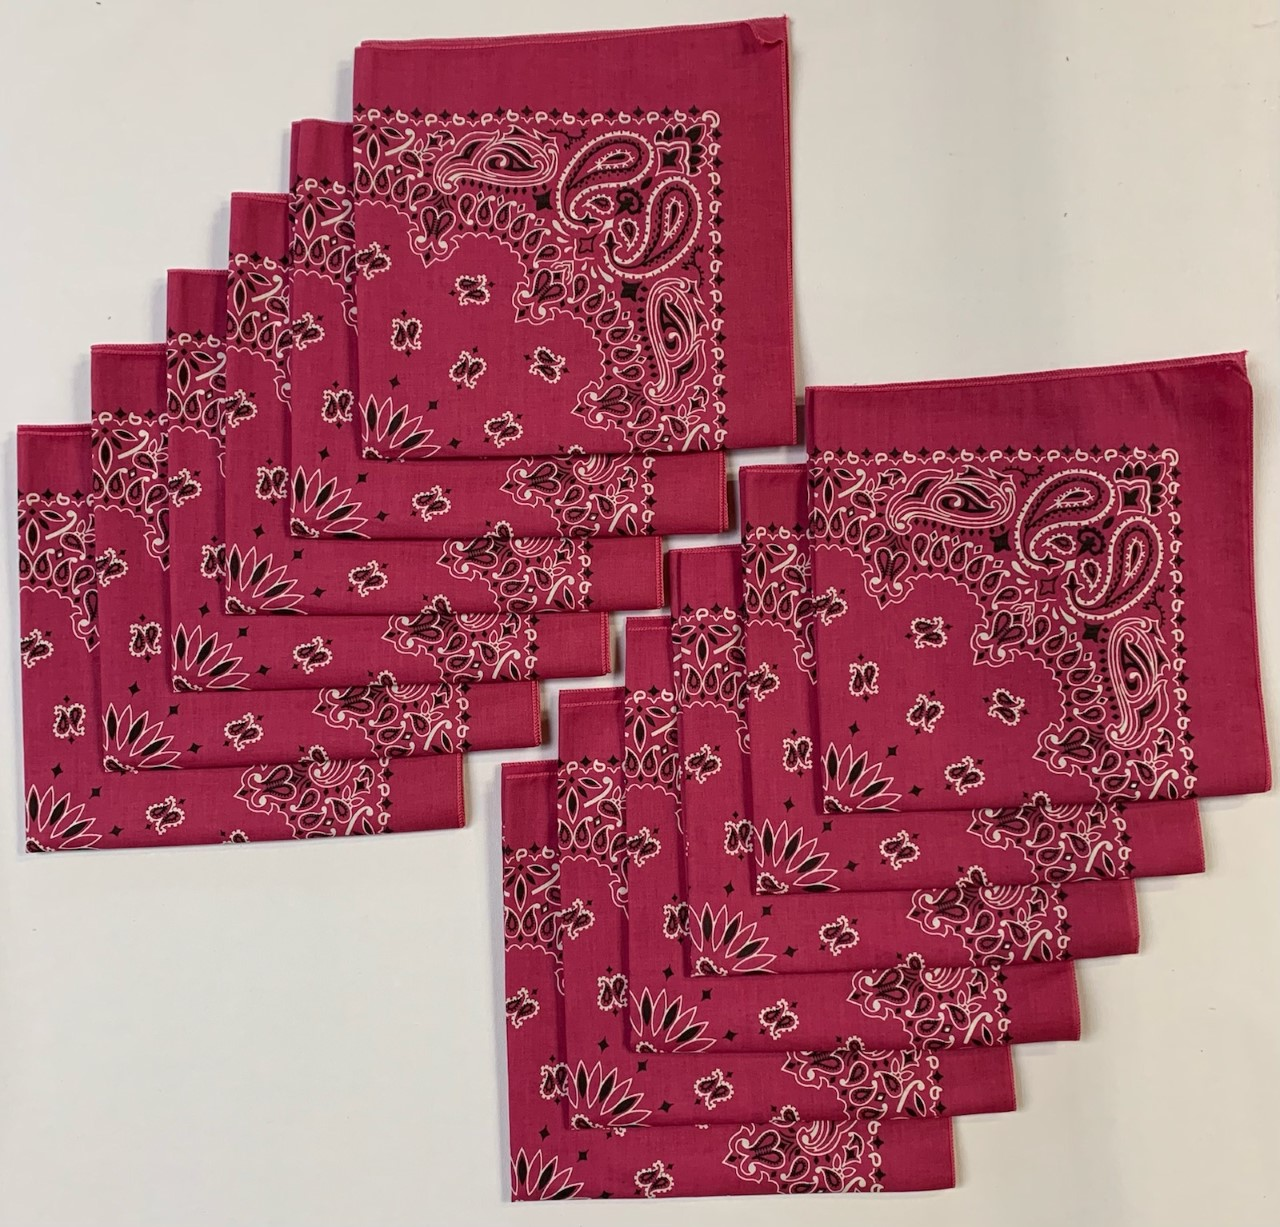 "Made in the USA Fuchsia Paisley Bandanas 12 Pk, 22"" x 22"" Cotton"